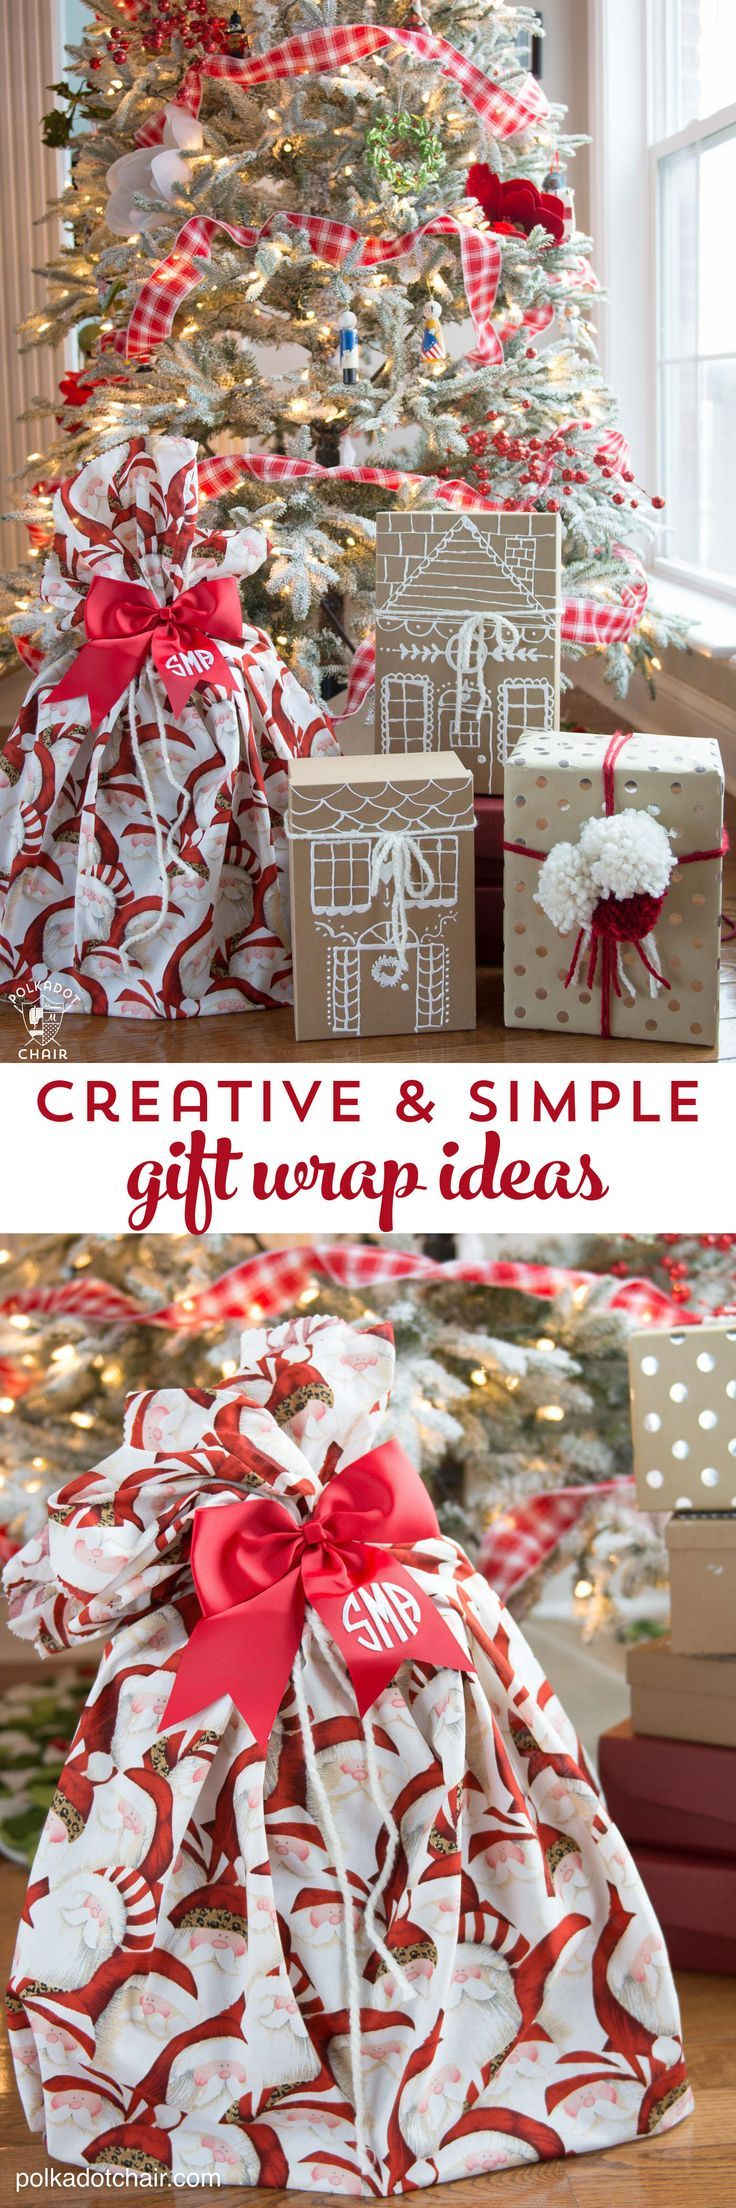 3 Simple And Creative Gift Wrap Ideas Diy Crafts Creative Gift